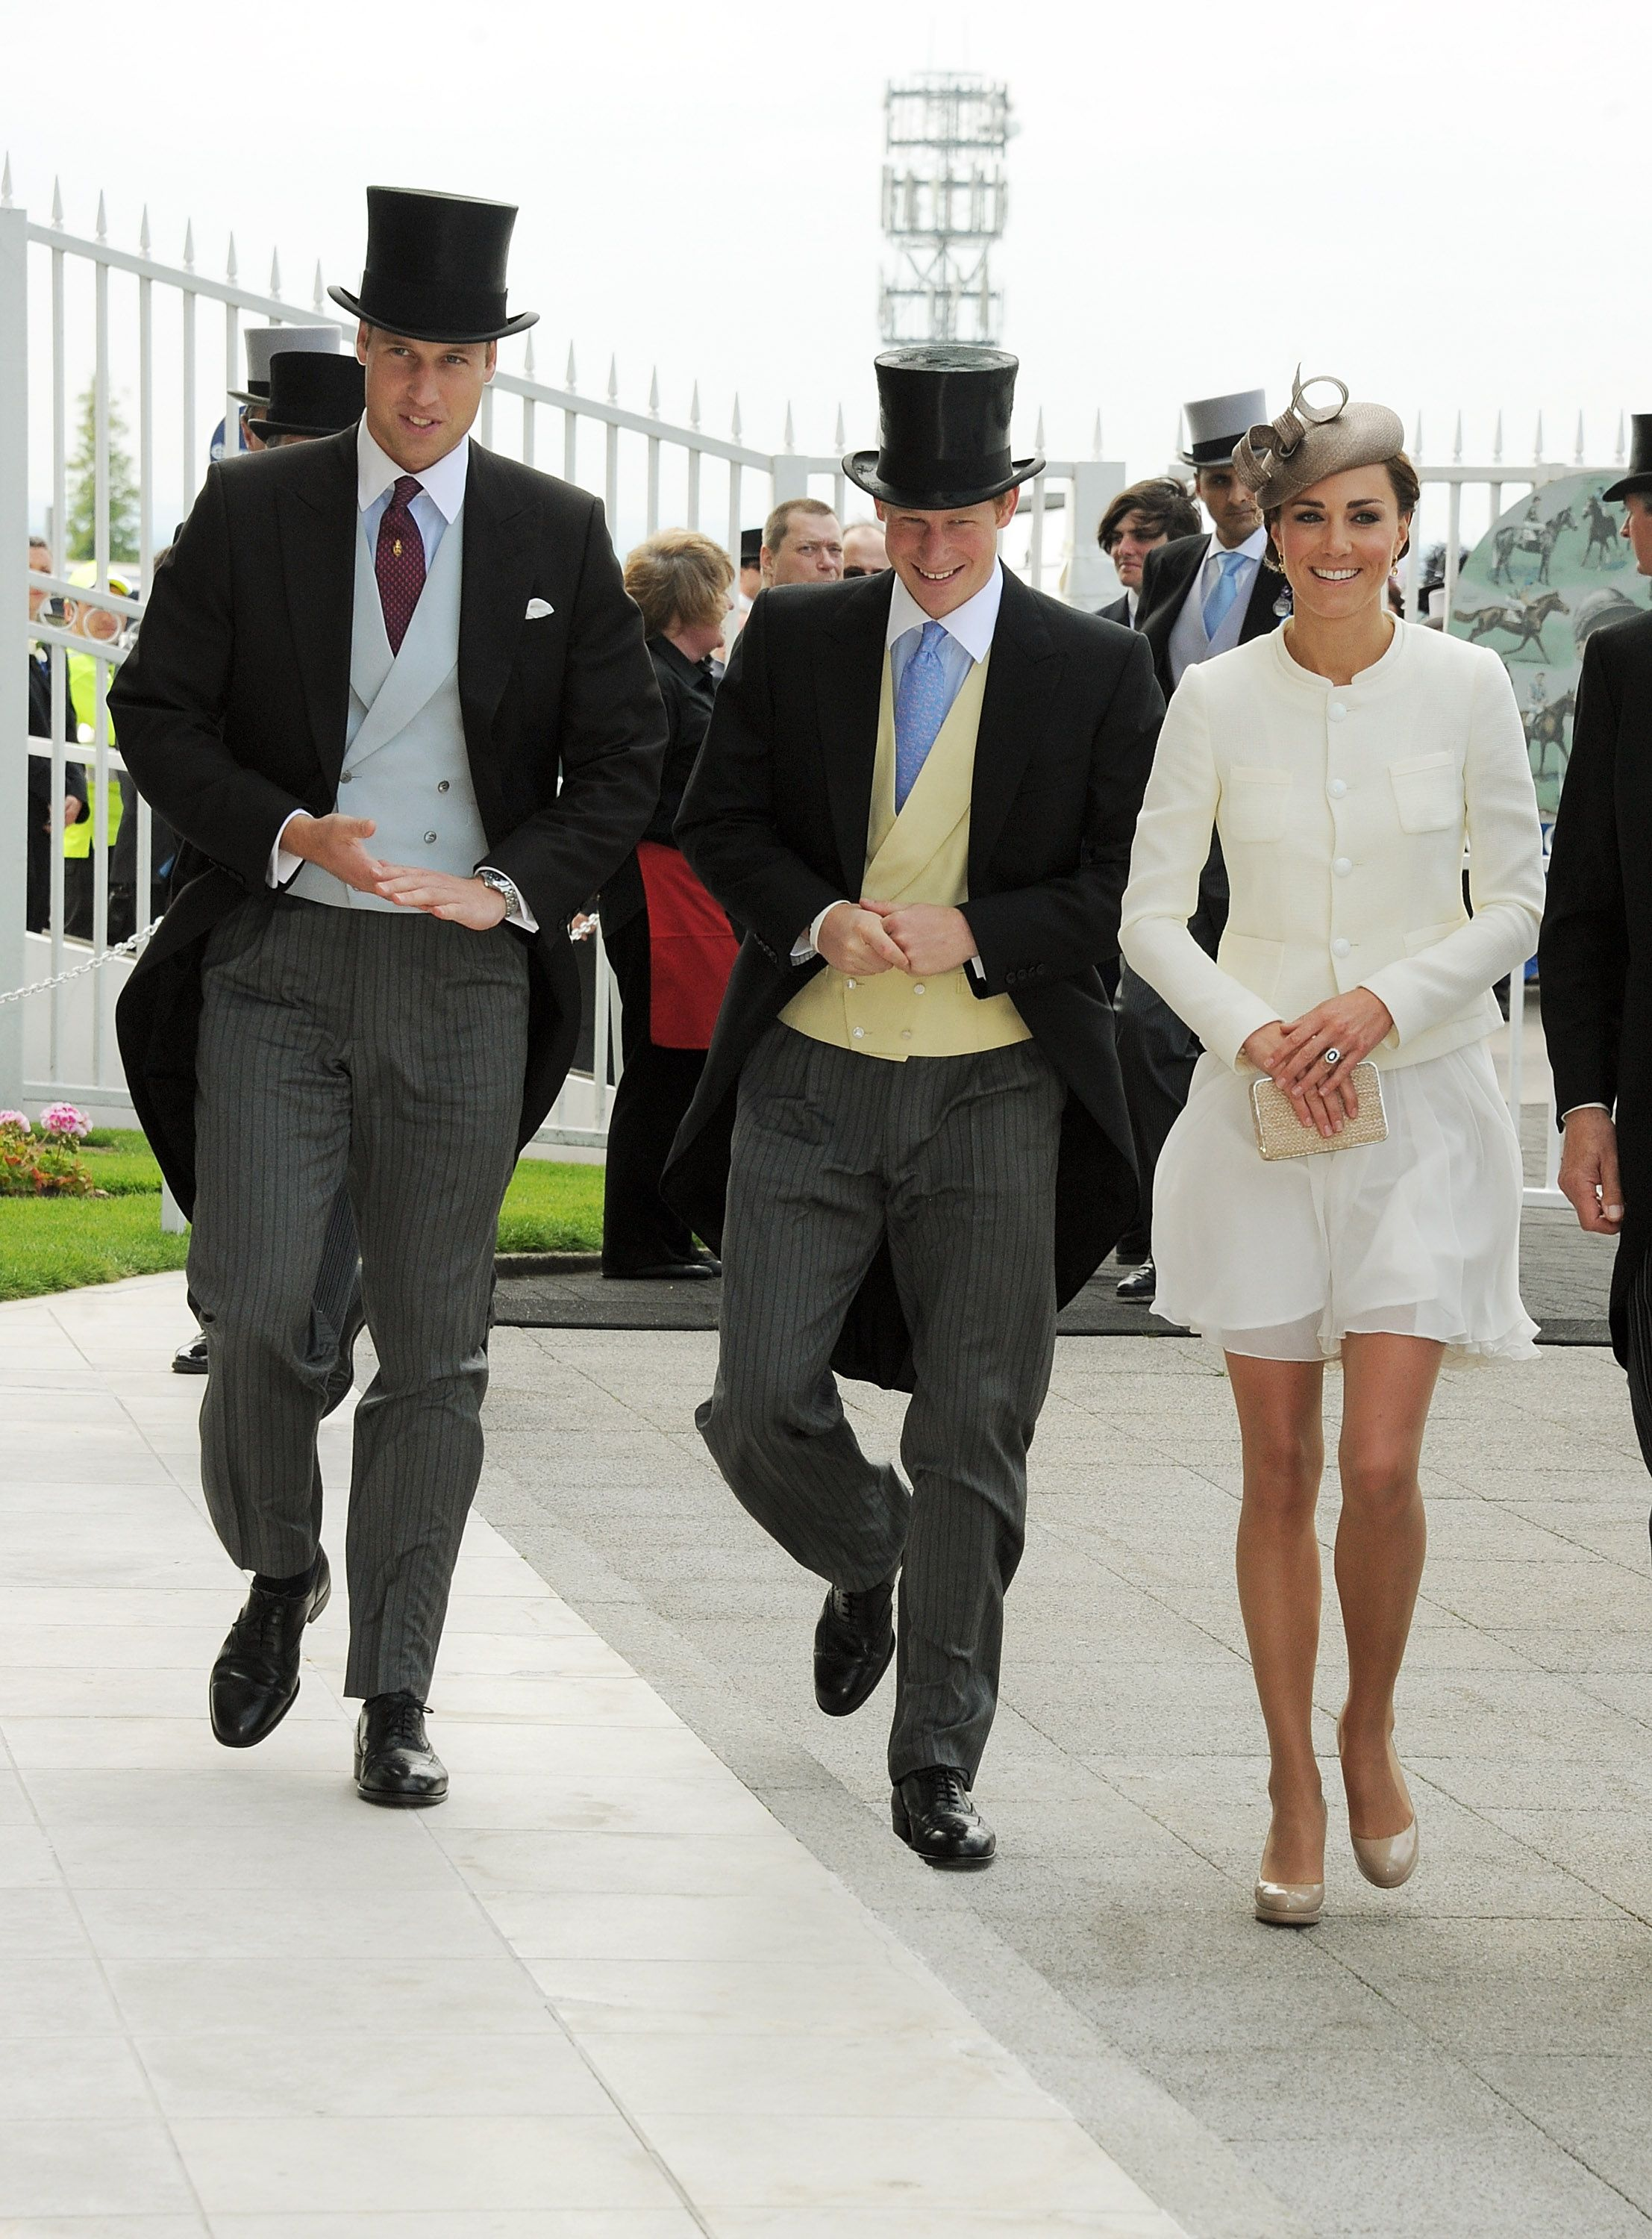 Kate was a vision in white on June 4, 2011 at the Epsom Derby in Epsom, England.